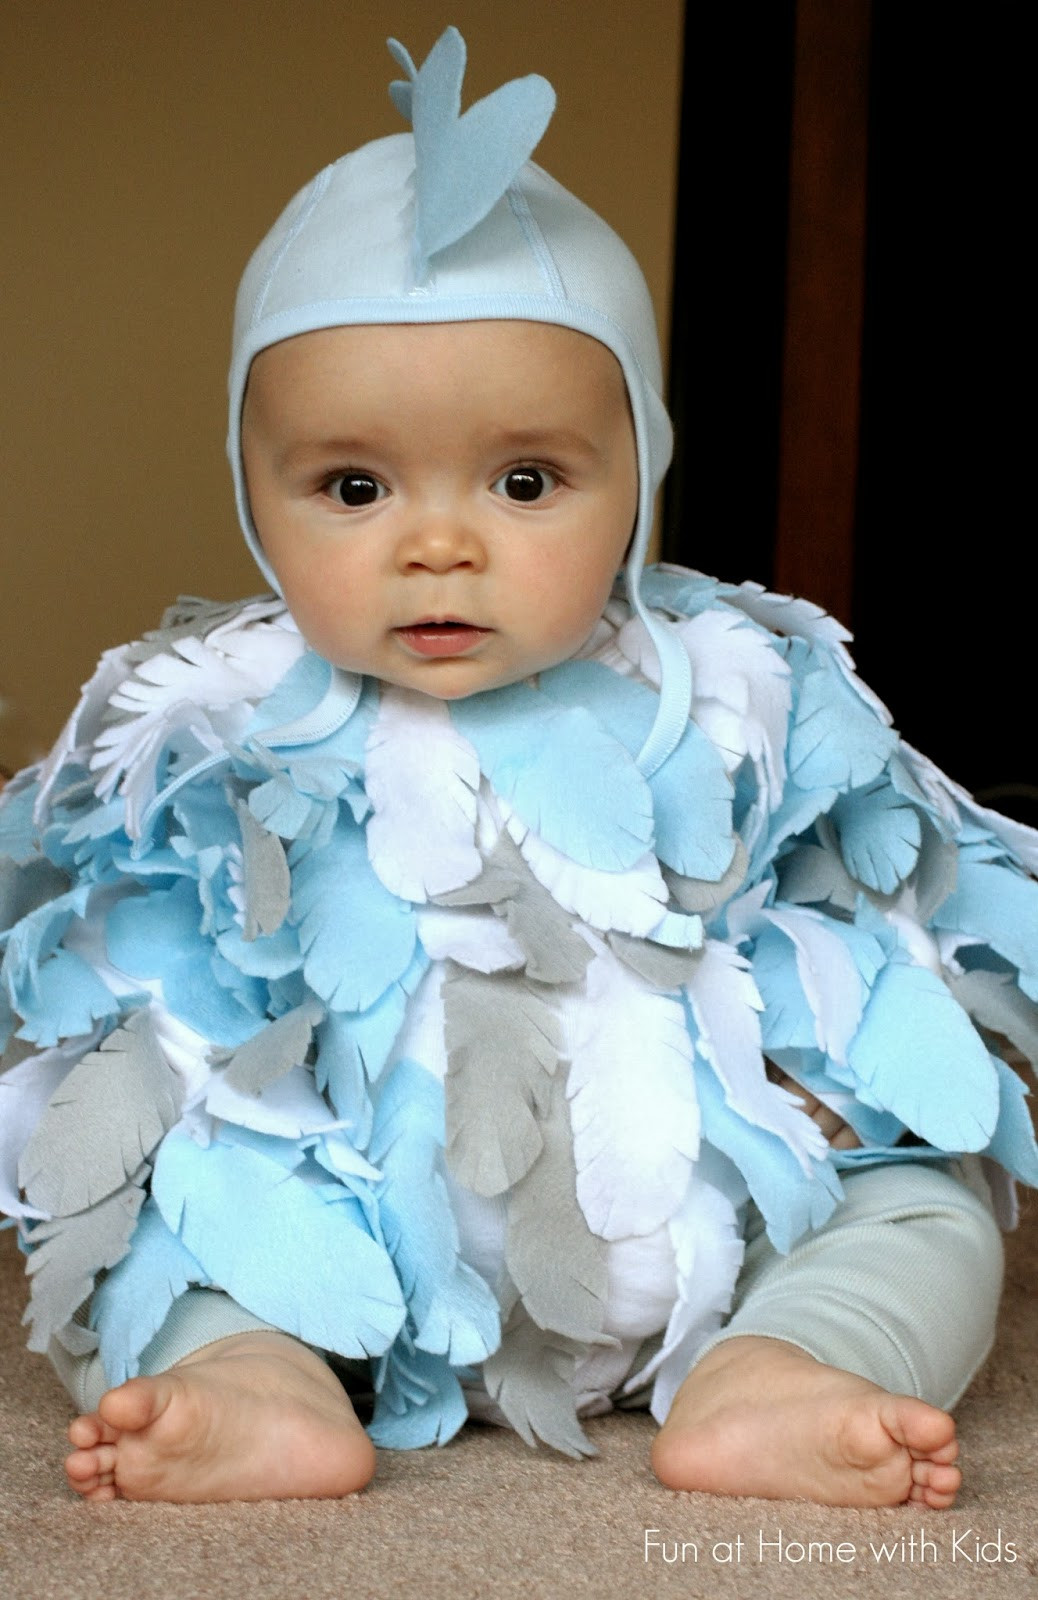 Best ideas about Baby Costume DIY . Save or Pin DIY No Sew Baby Chicken Halloween Costume Now.